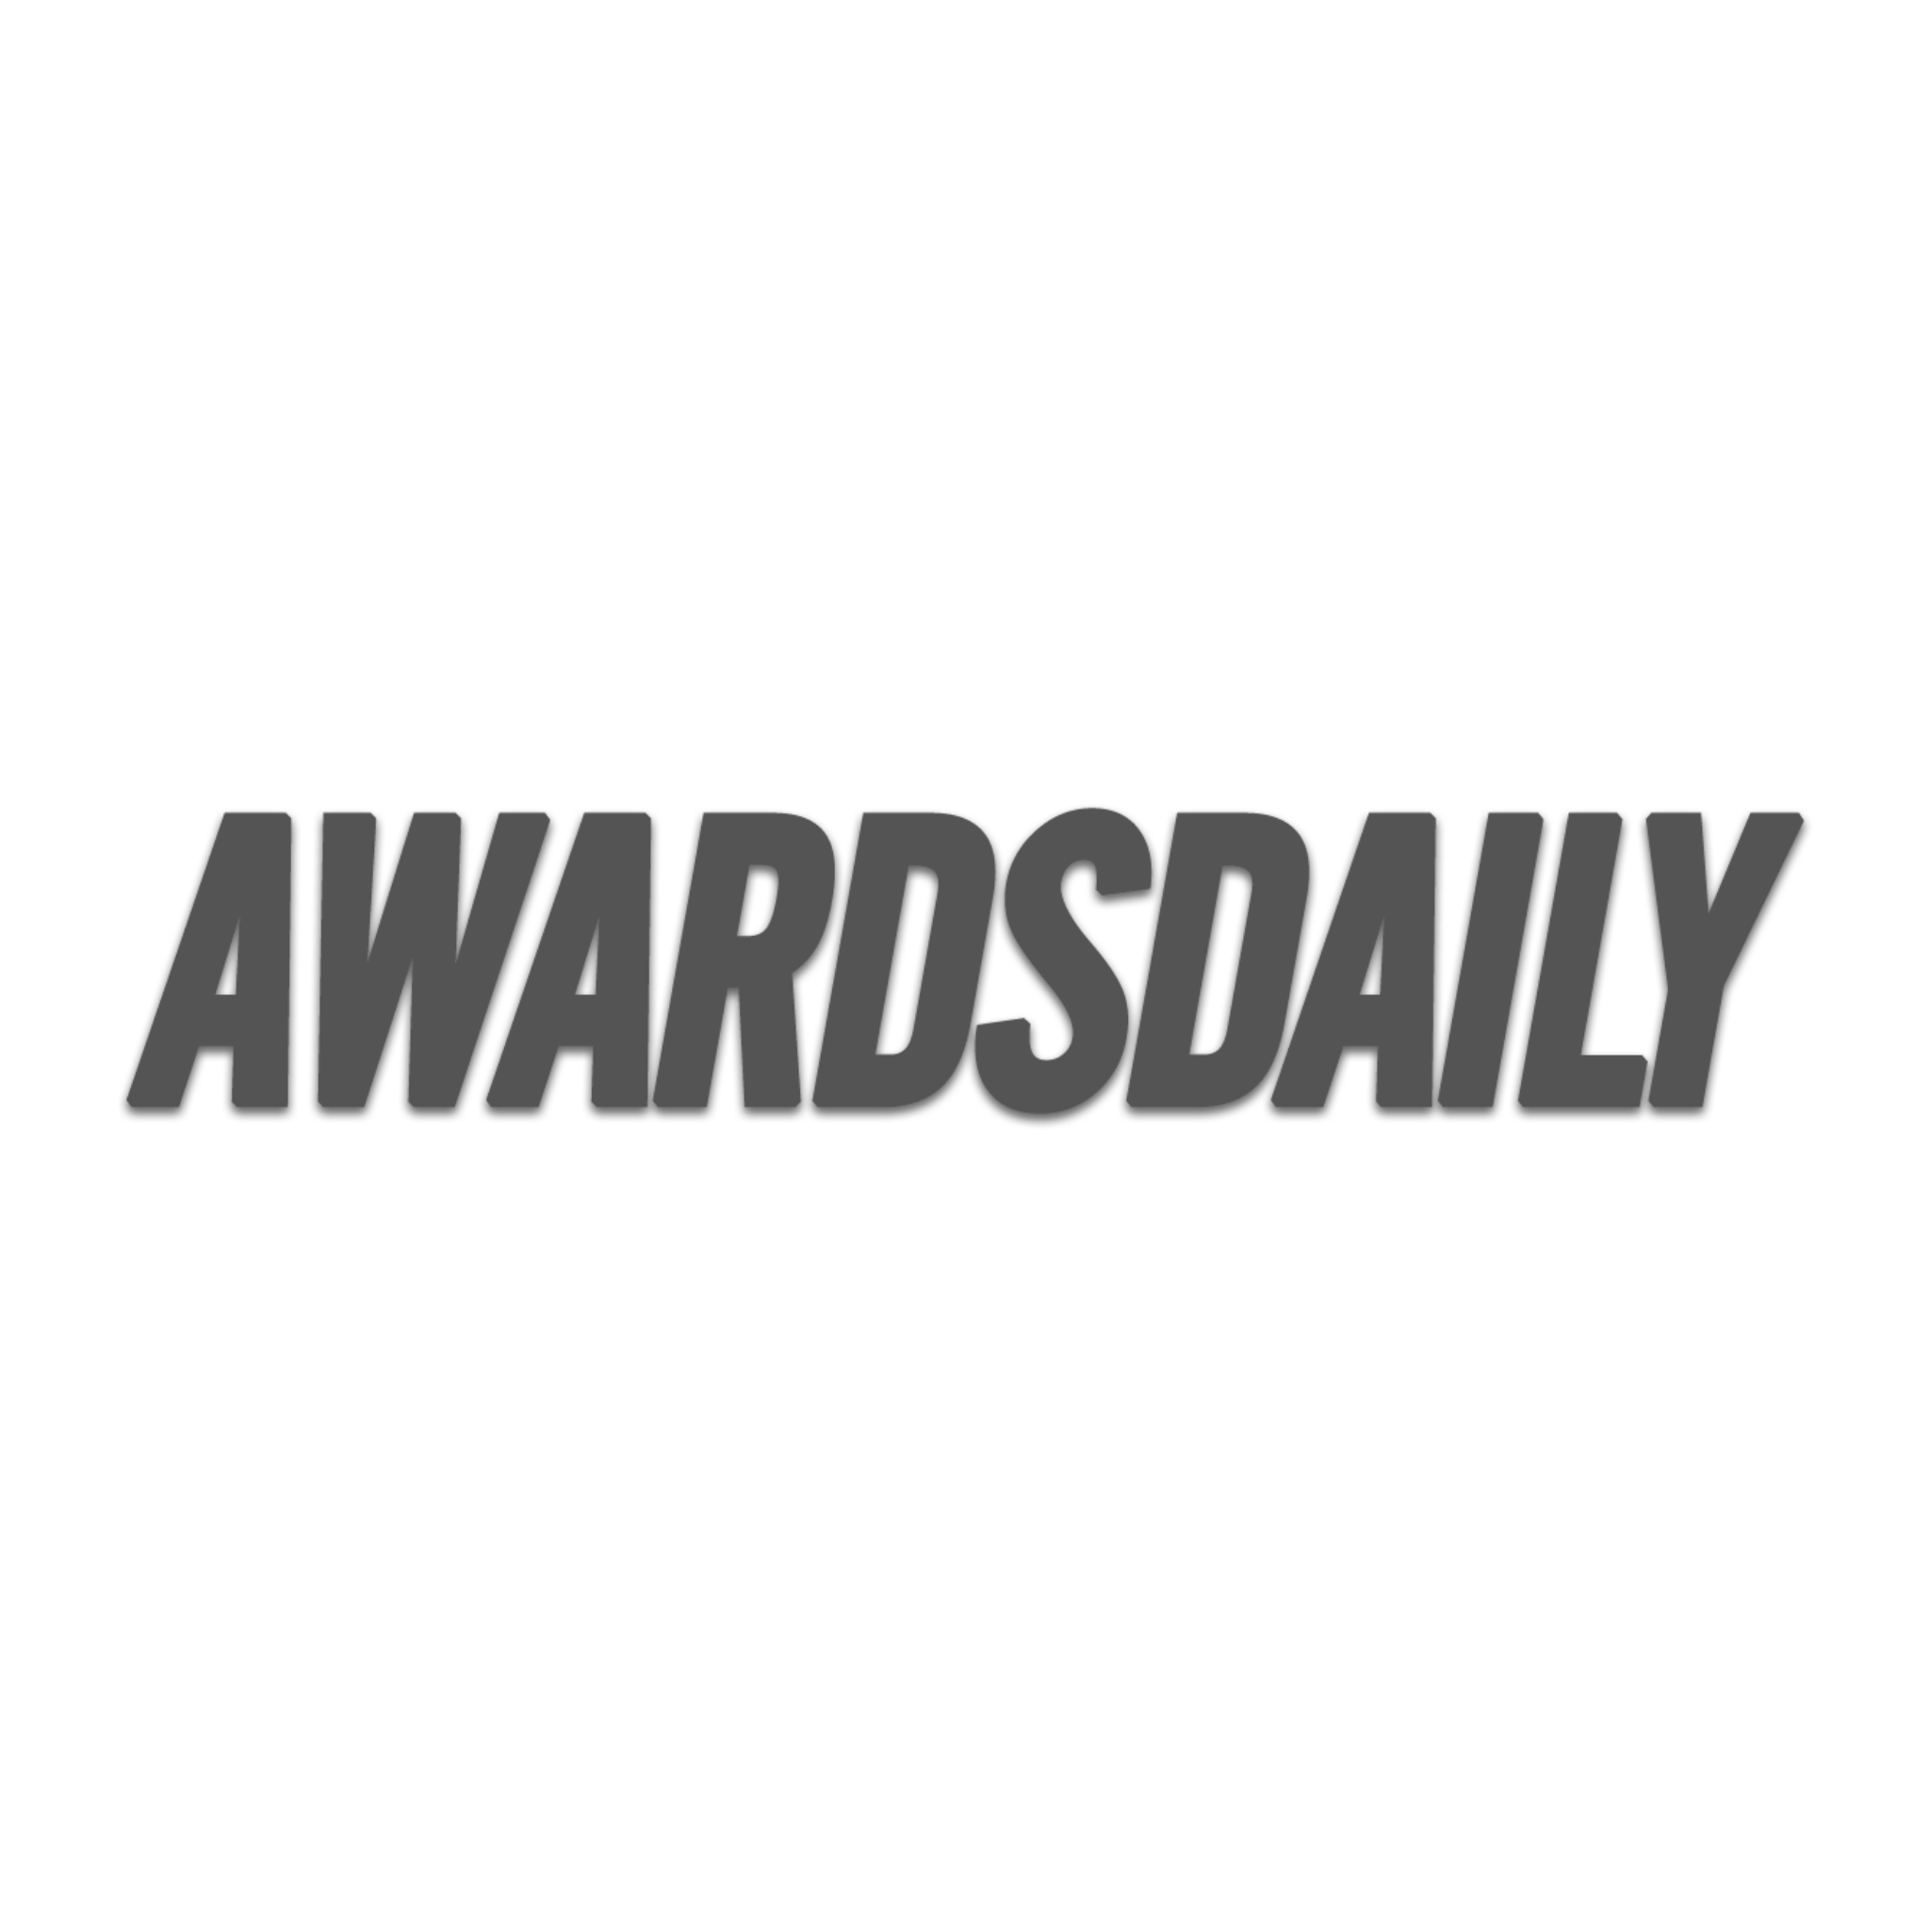 awardsdaily-square.png